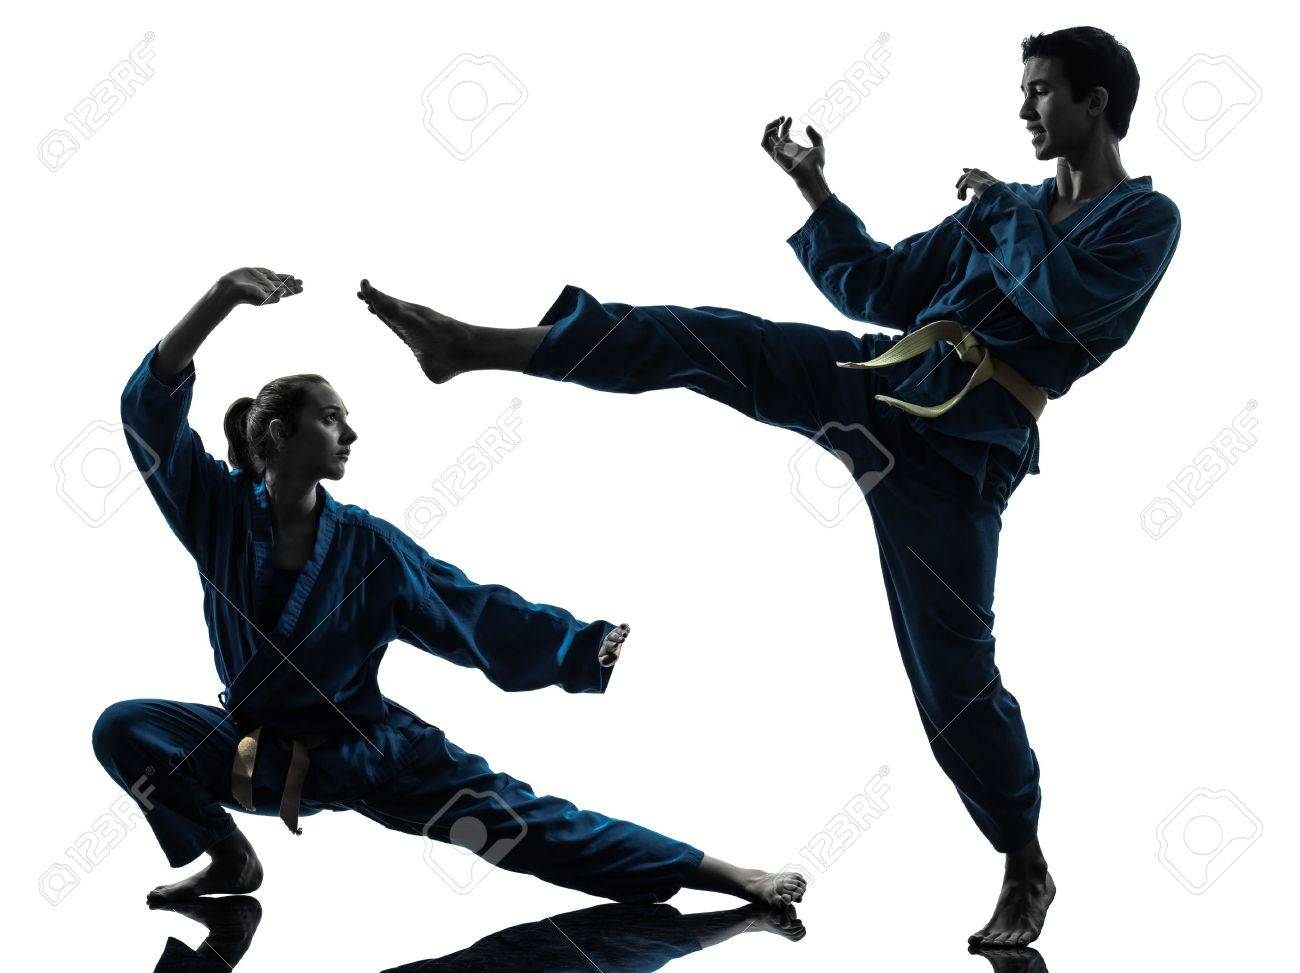 one  man woman couple exercising karate vietvodao martial arts in silhouette studio isolated on white background Stock Photo - 16716016